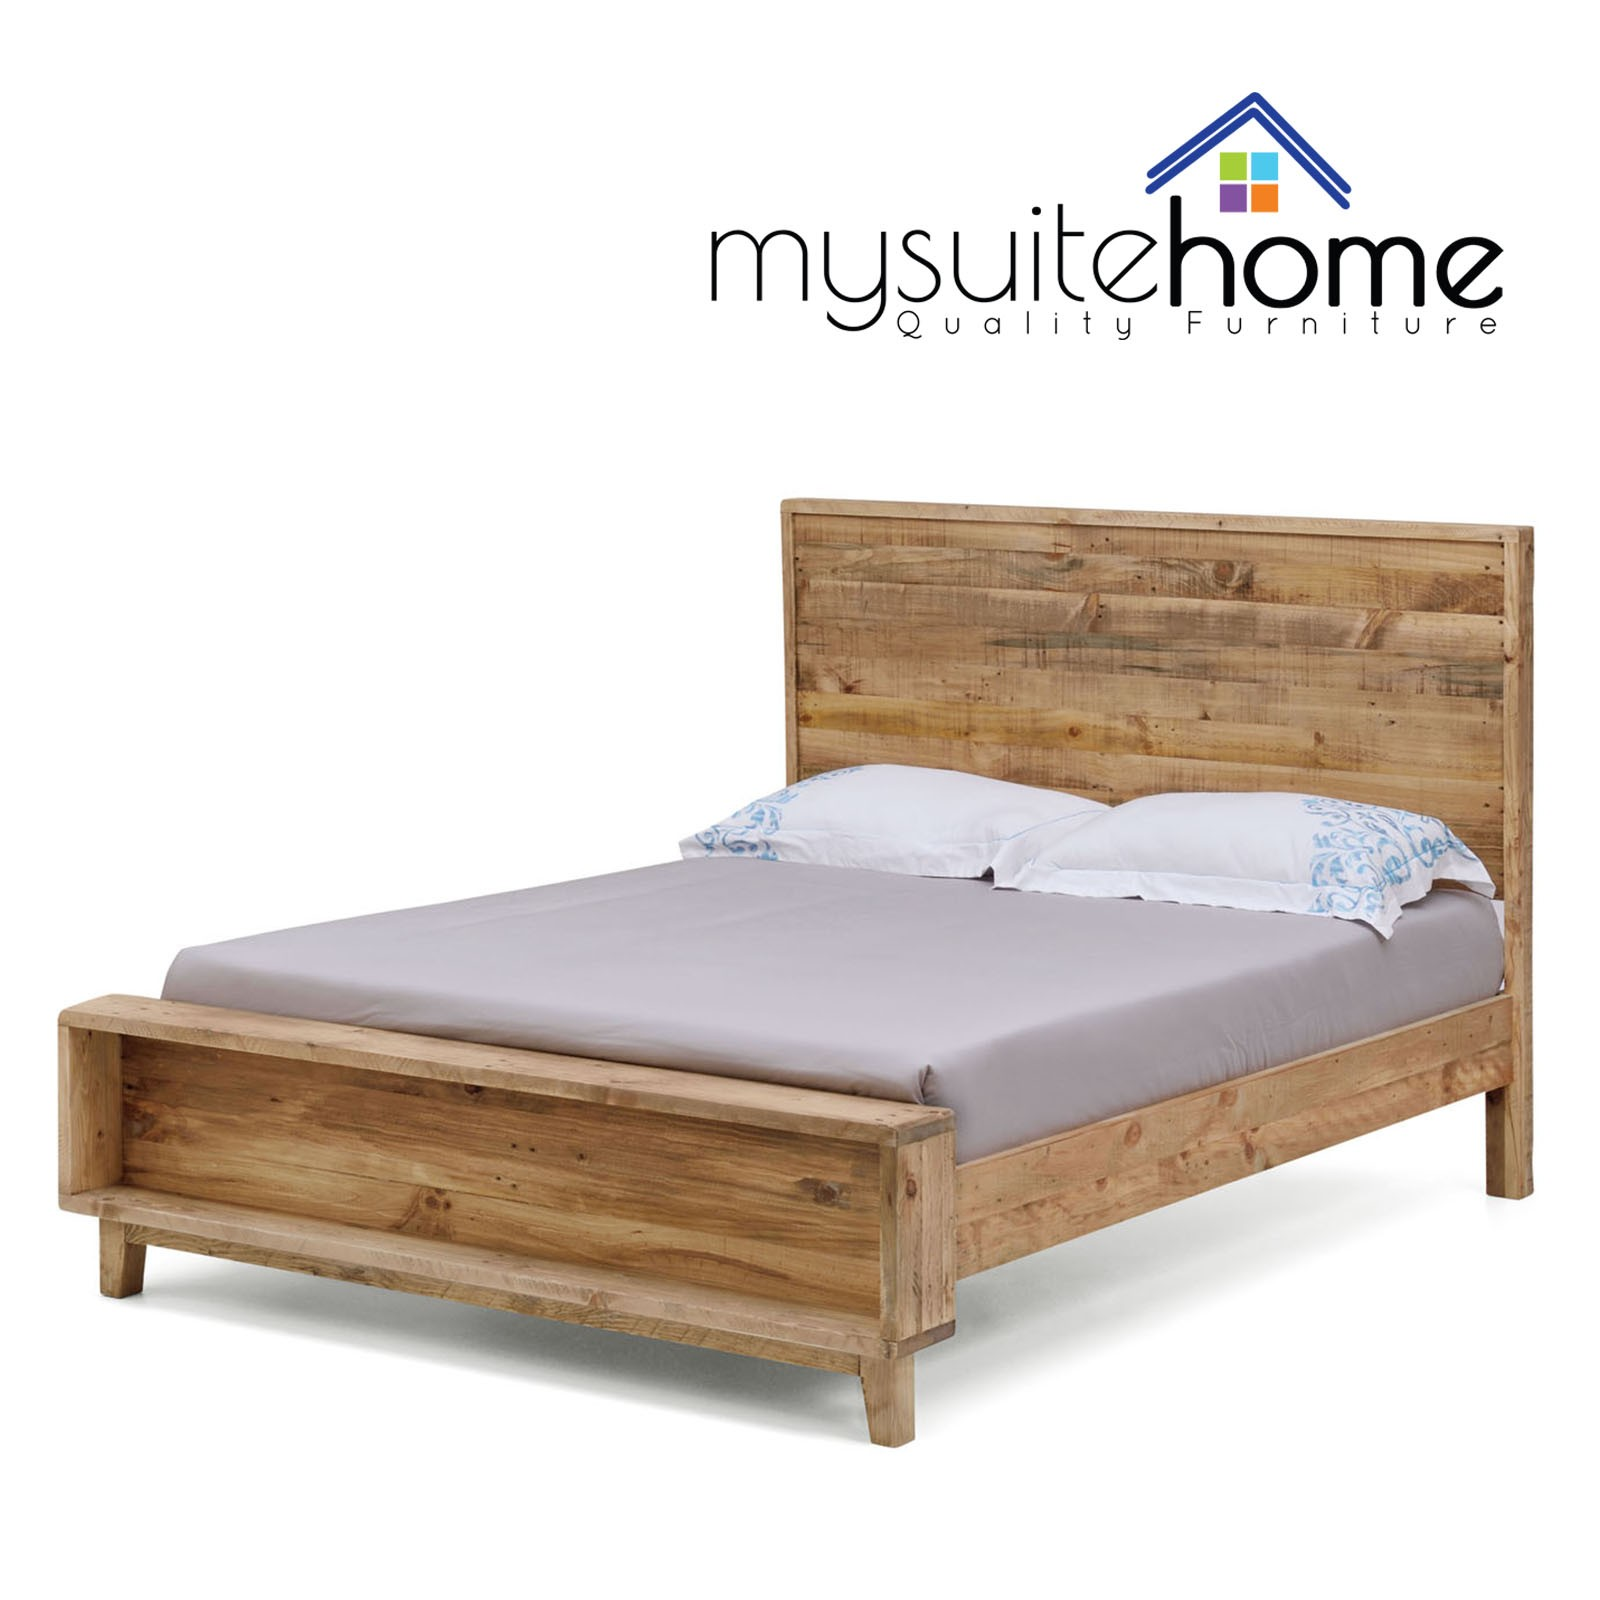 portland recycled solid pine rustic timber queen size bed frame. Black Bedroom Furniture Sets. Home Design Ideas